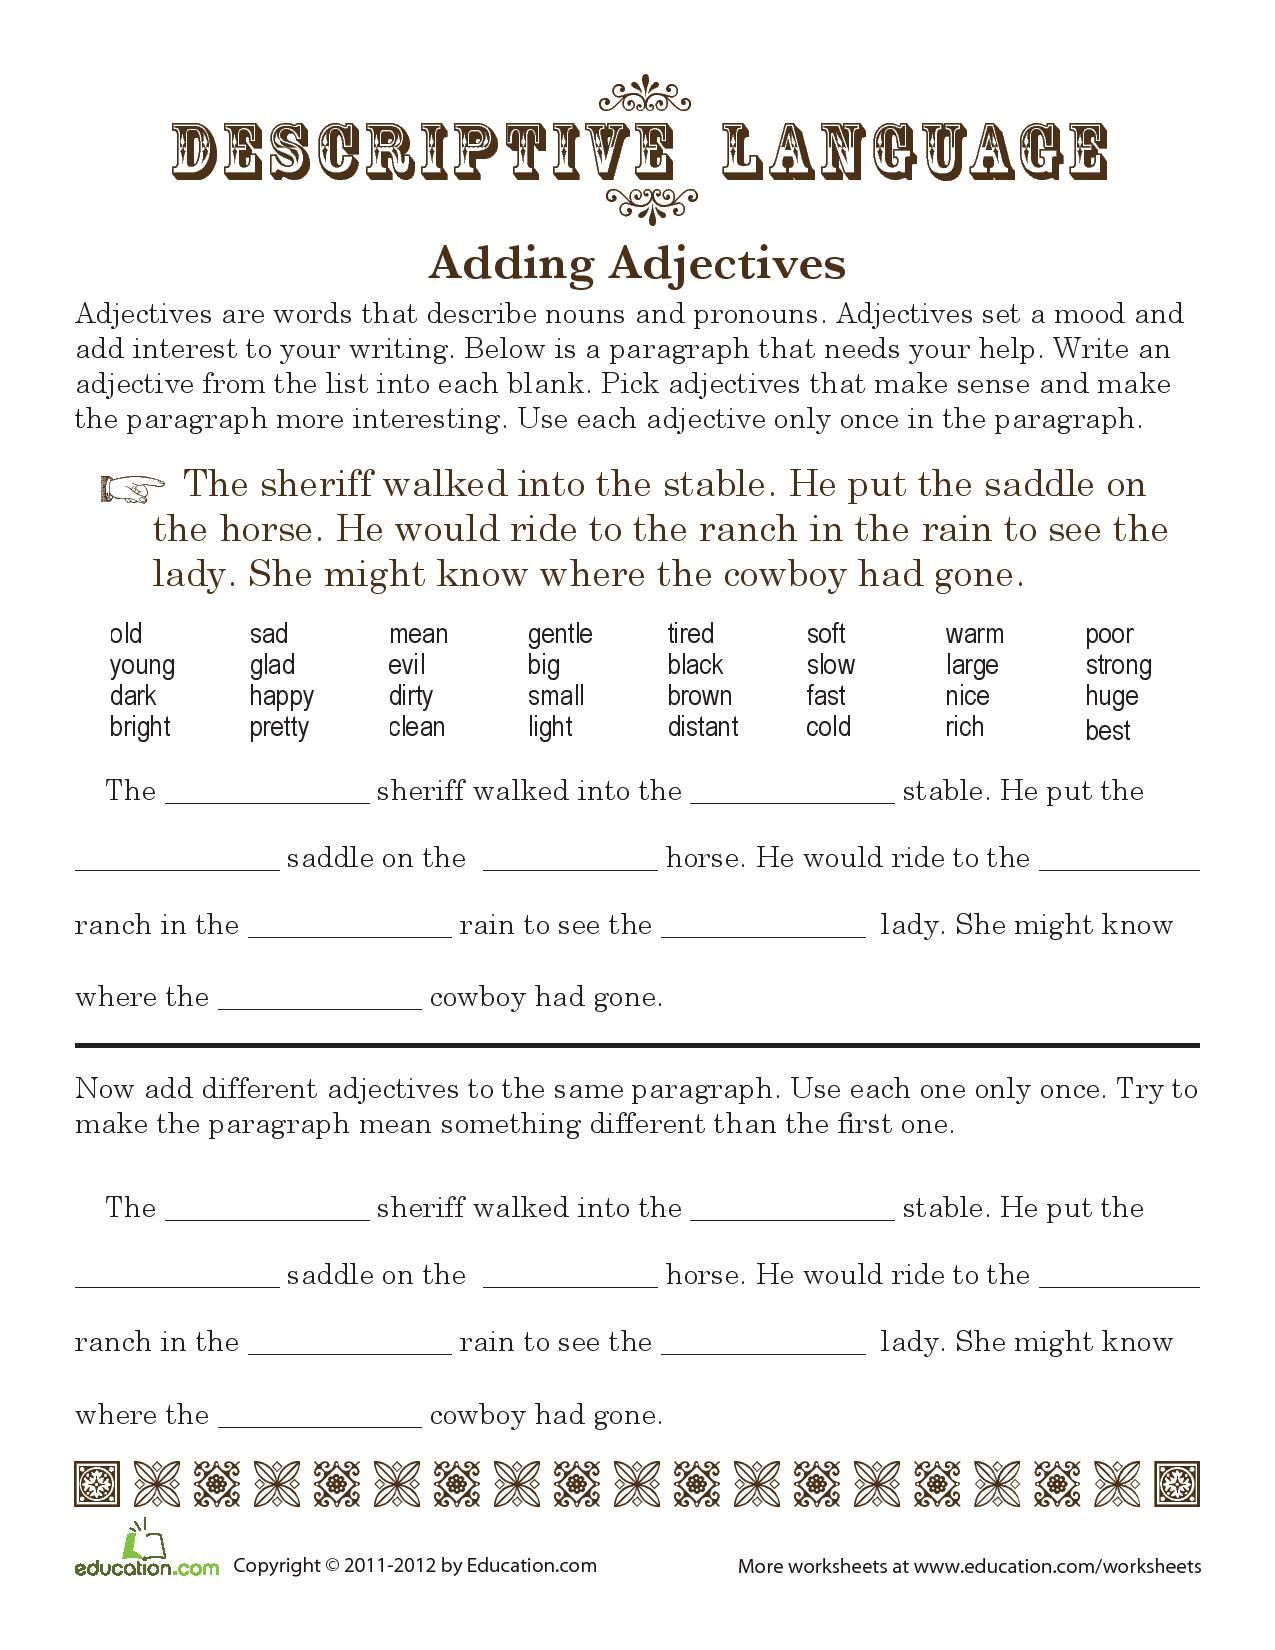 Worksheets Fifth Grade Language Arts Worksheets time to saddle up some adjectives descriptive language adds interest writing for fifth graders